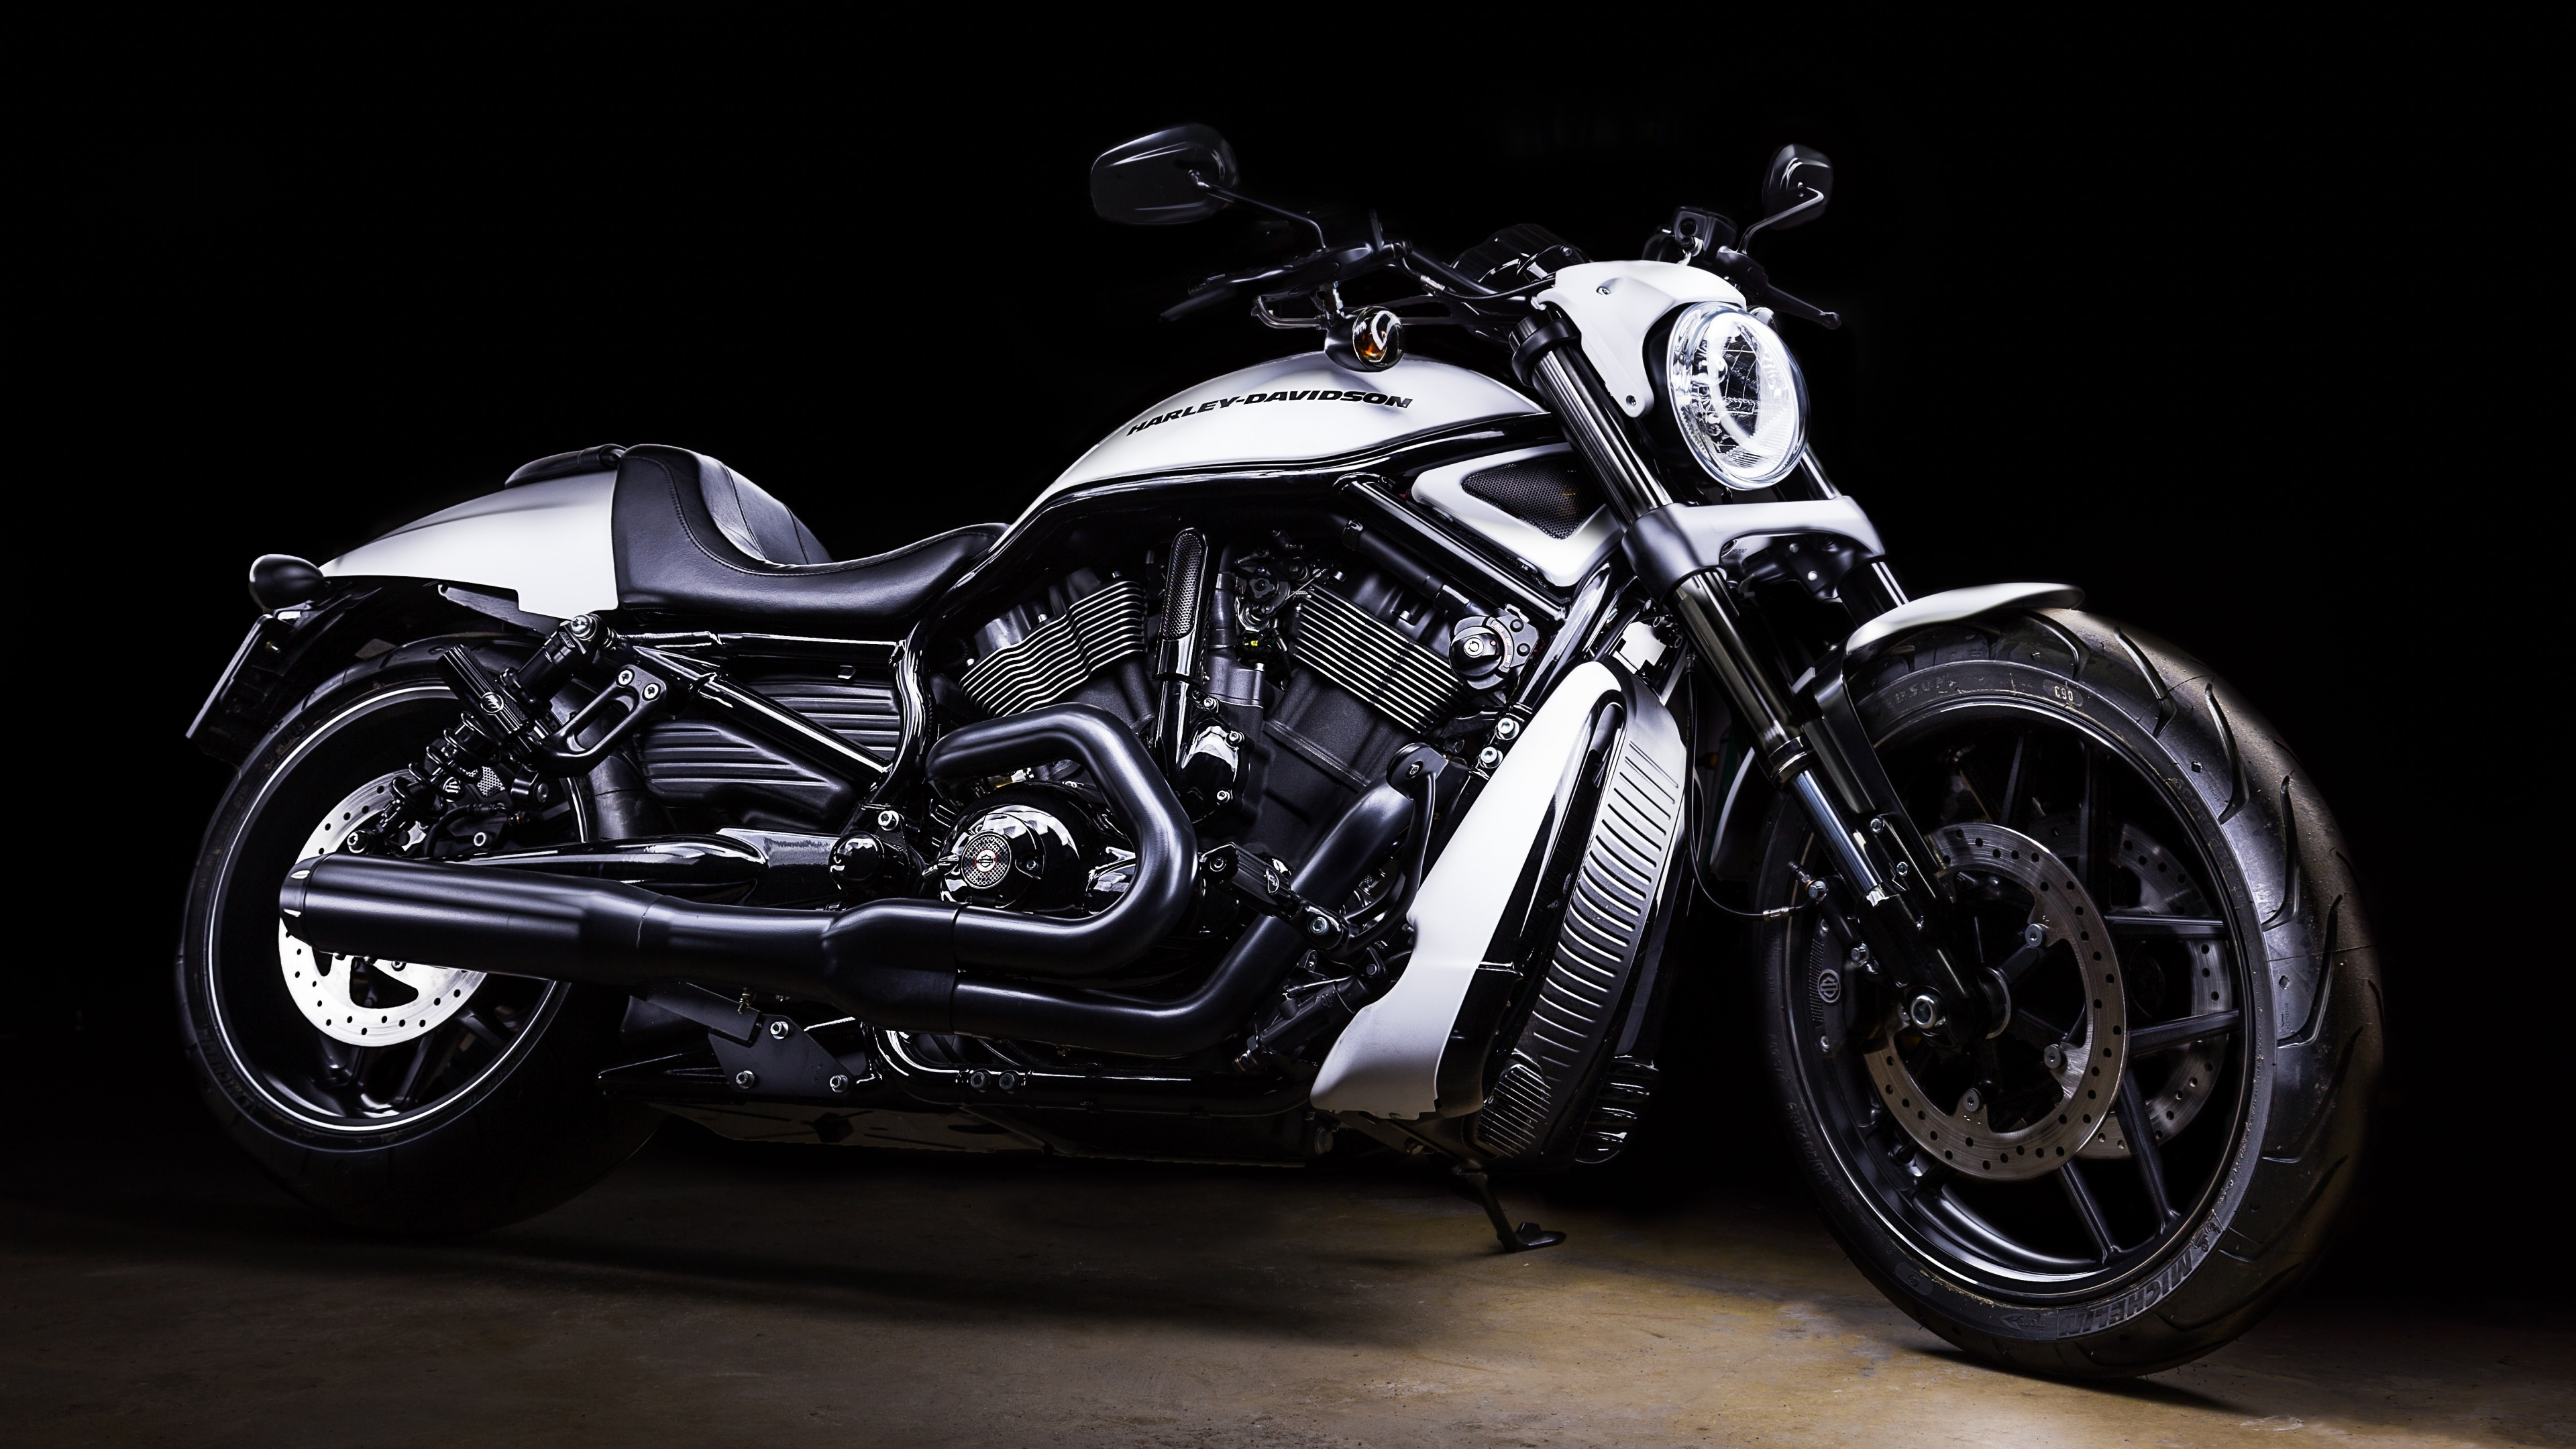 Harley Davidson 4k Wallpaper Black Background Motorcycle White 5k Black Dark 2386